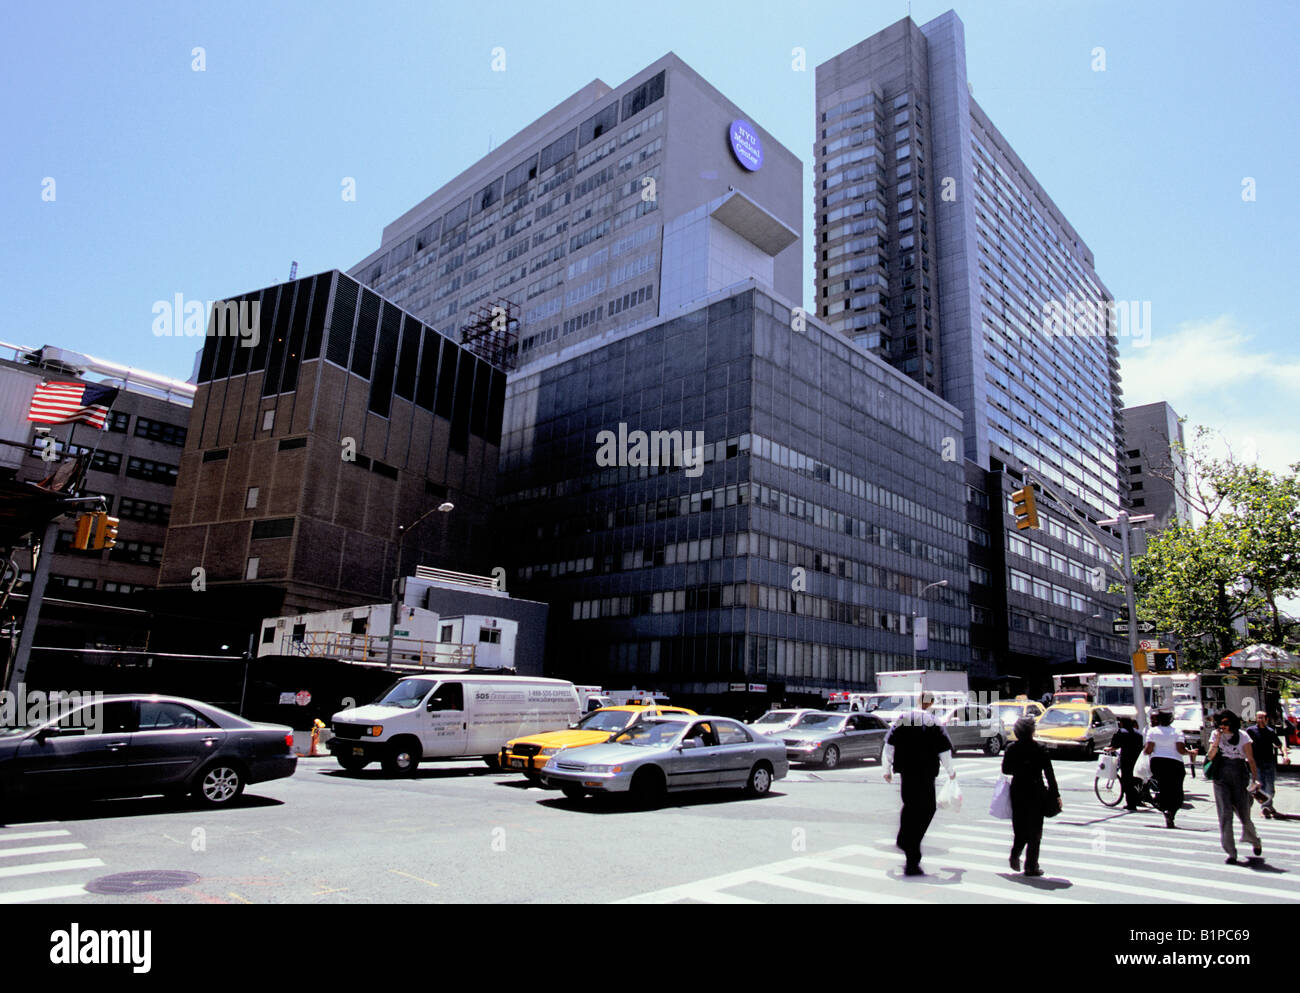 New York City University Hospital NYU Medical Center Langone Medical Center USA NYC Stock Photo